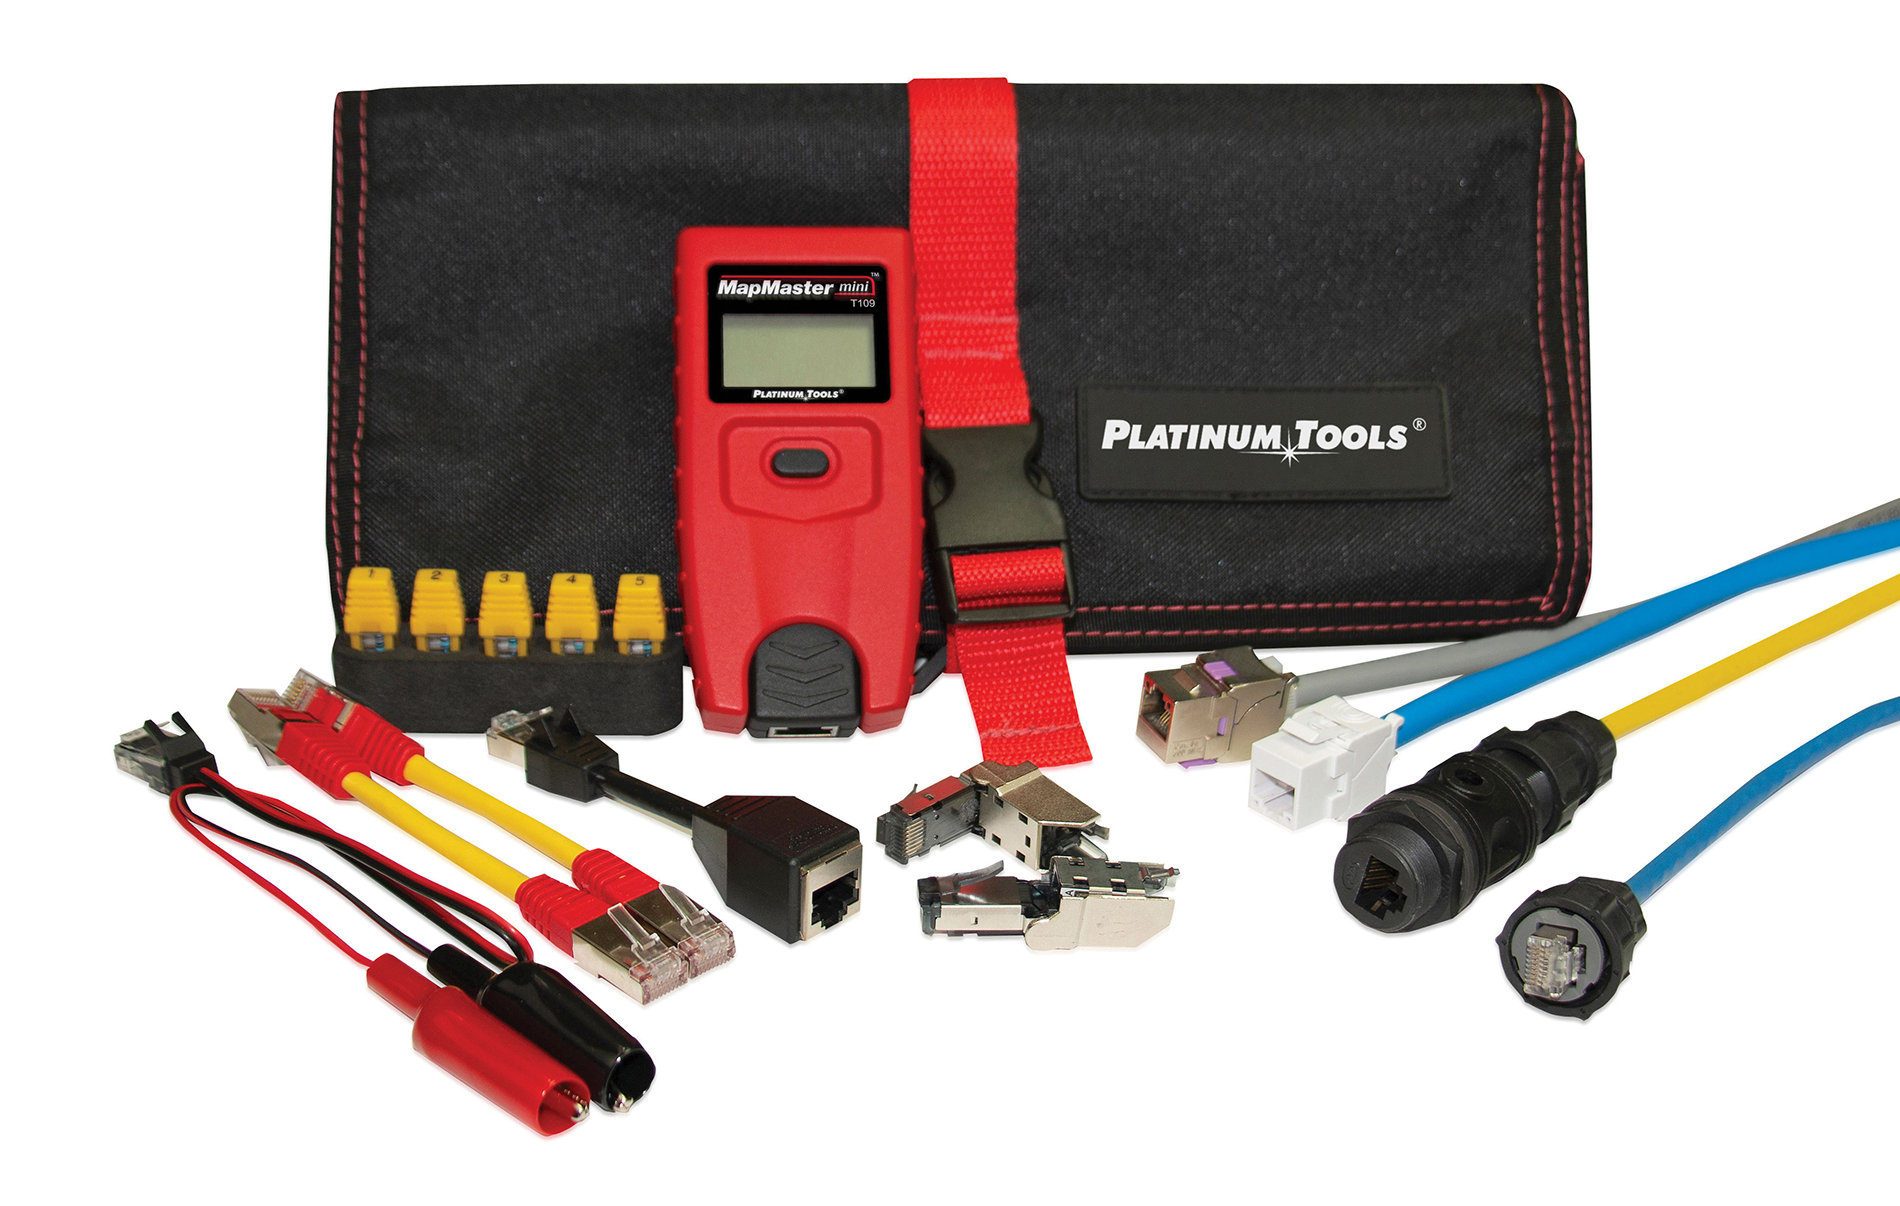 Platinum Tools' MapMaster Mini Product Kit